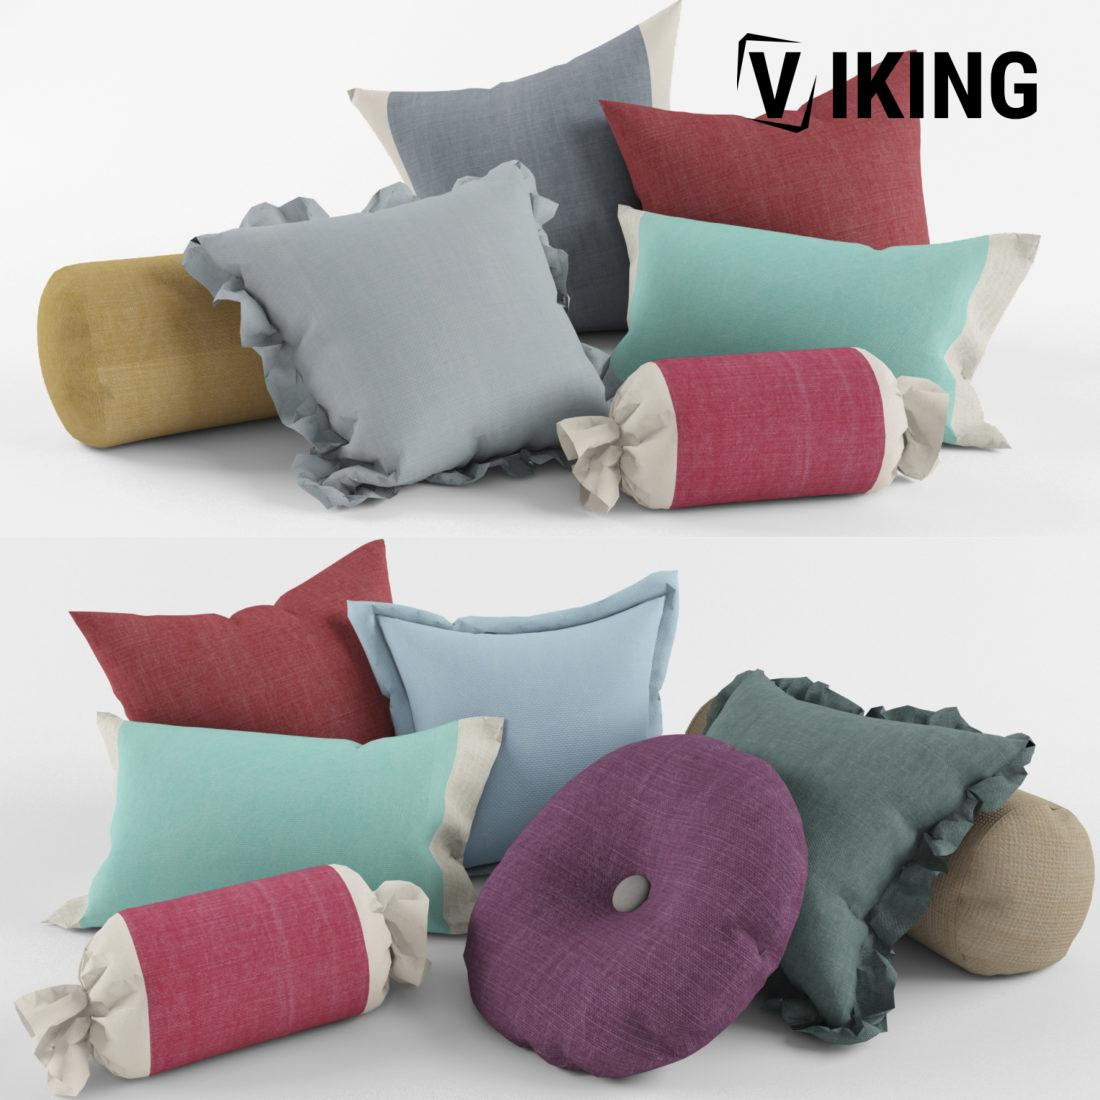 908.A set of Pillows 3dsmax File free download 3 scaled 1